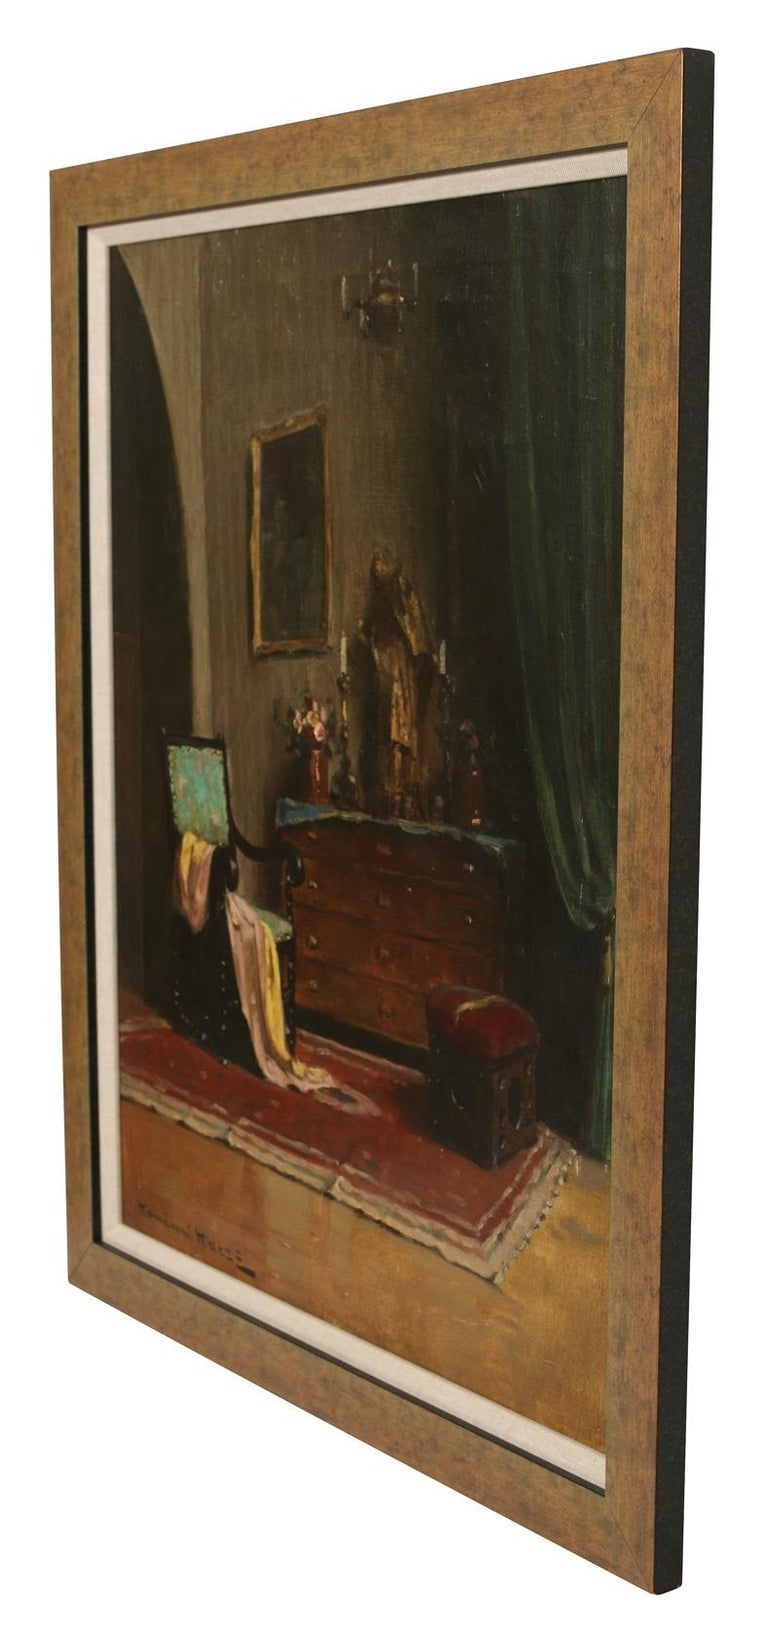 20th Century Am Oil Painting of an Interior by a Hungarian Artist For Sale